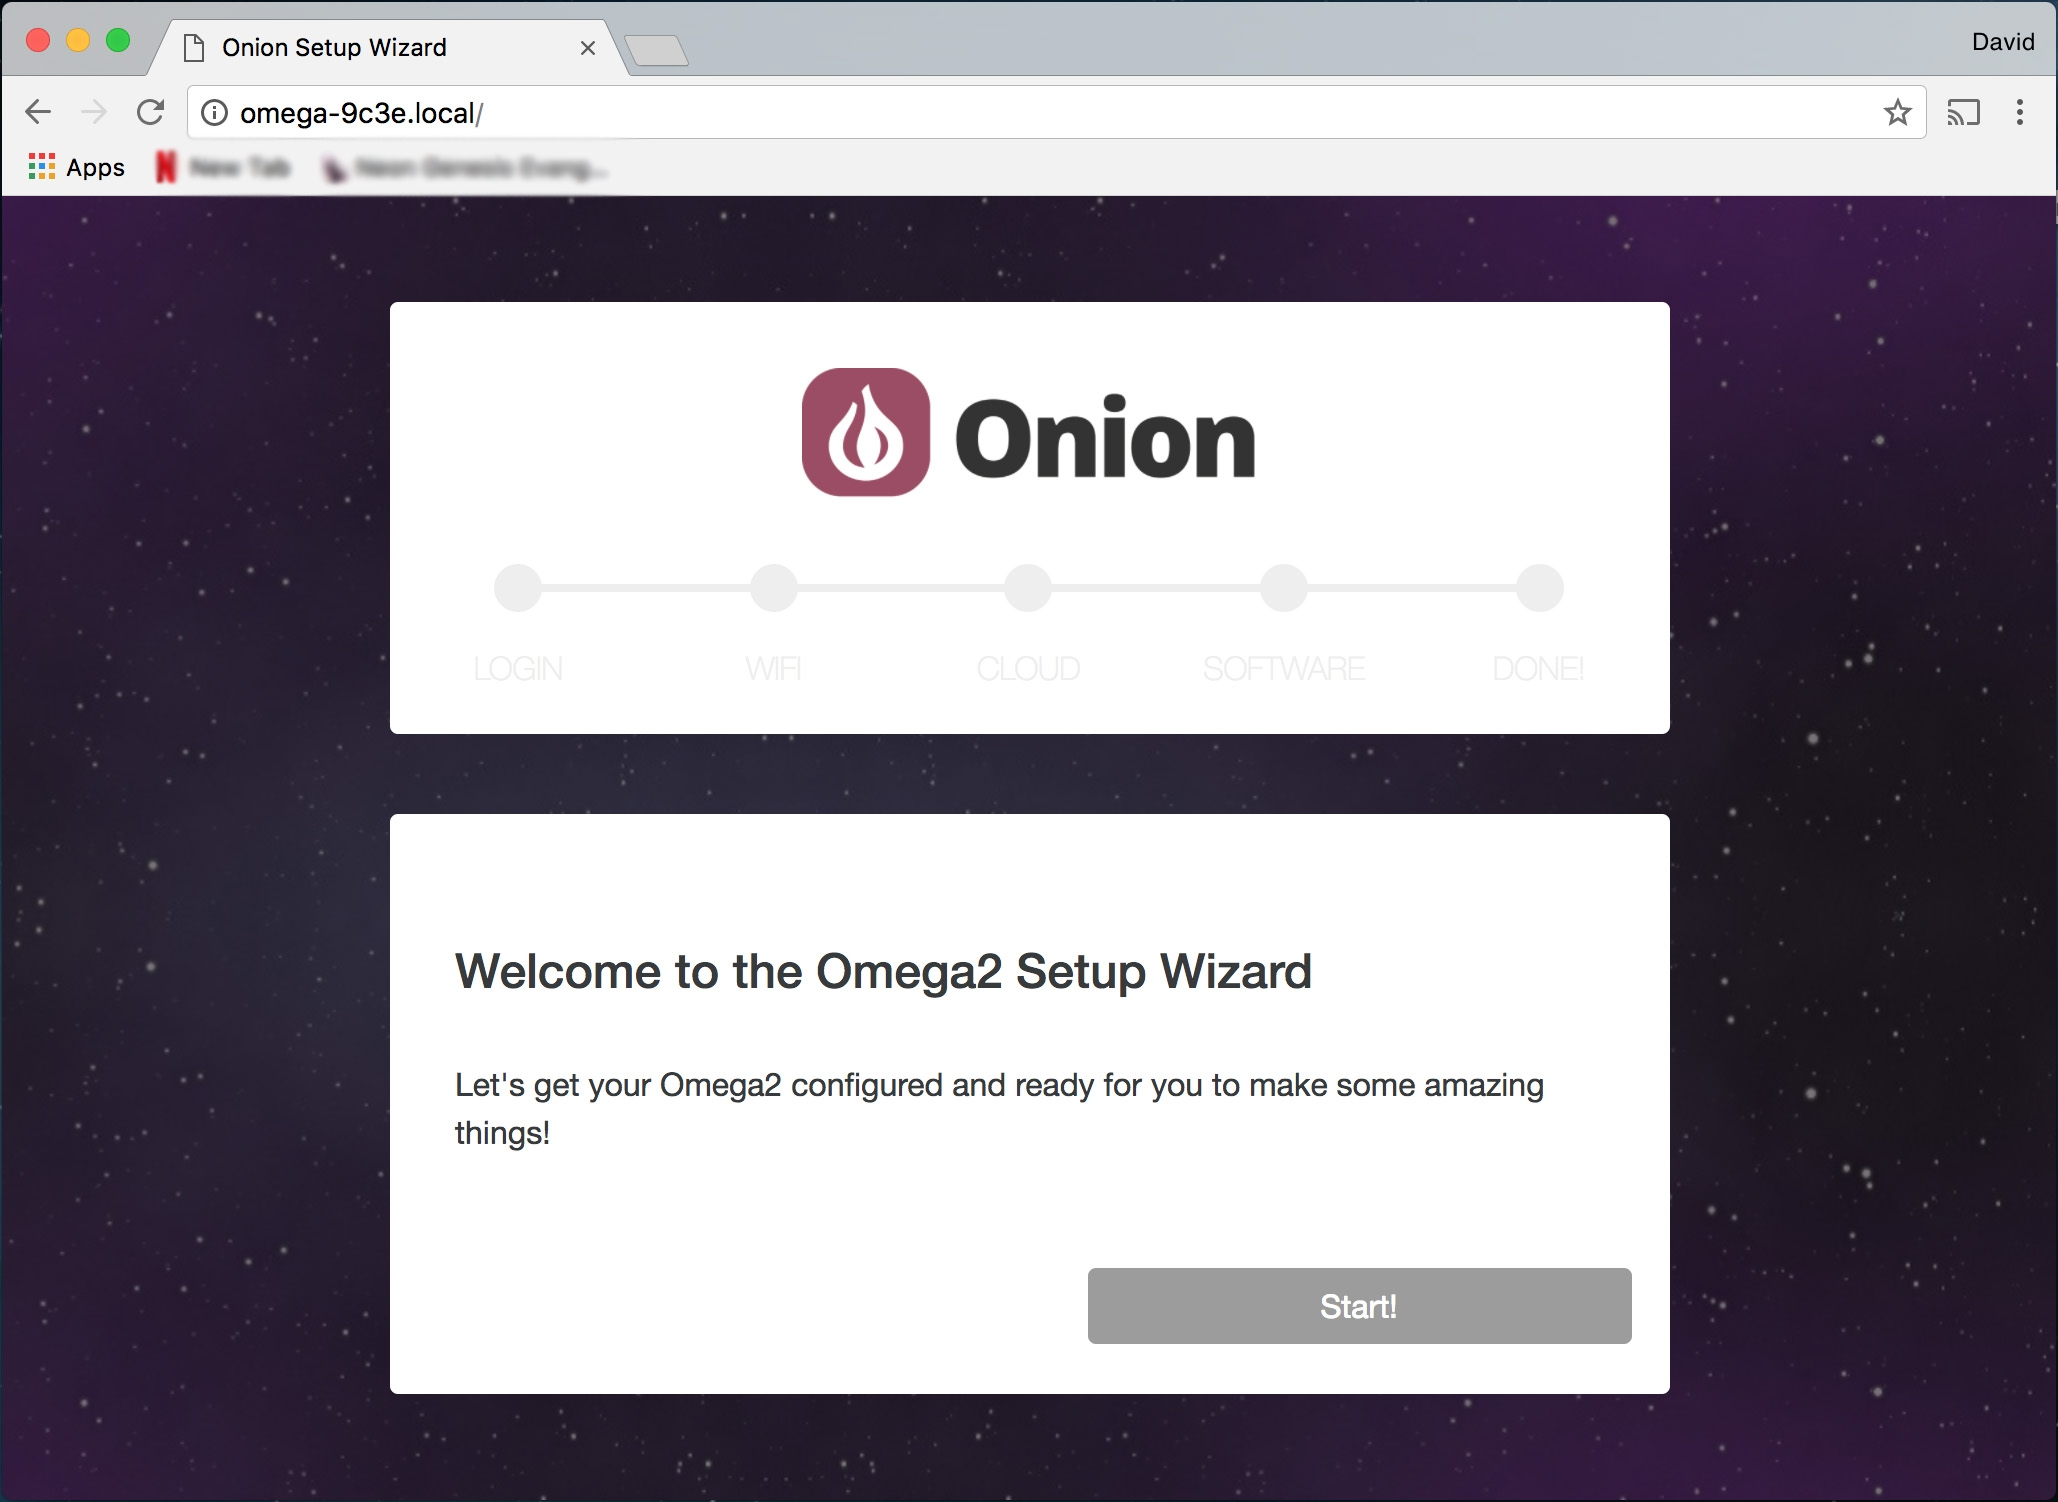 onion-omega2-setup-wizard-welcome